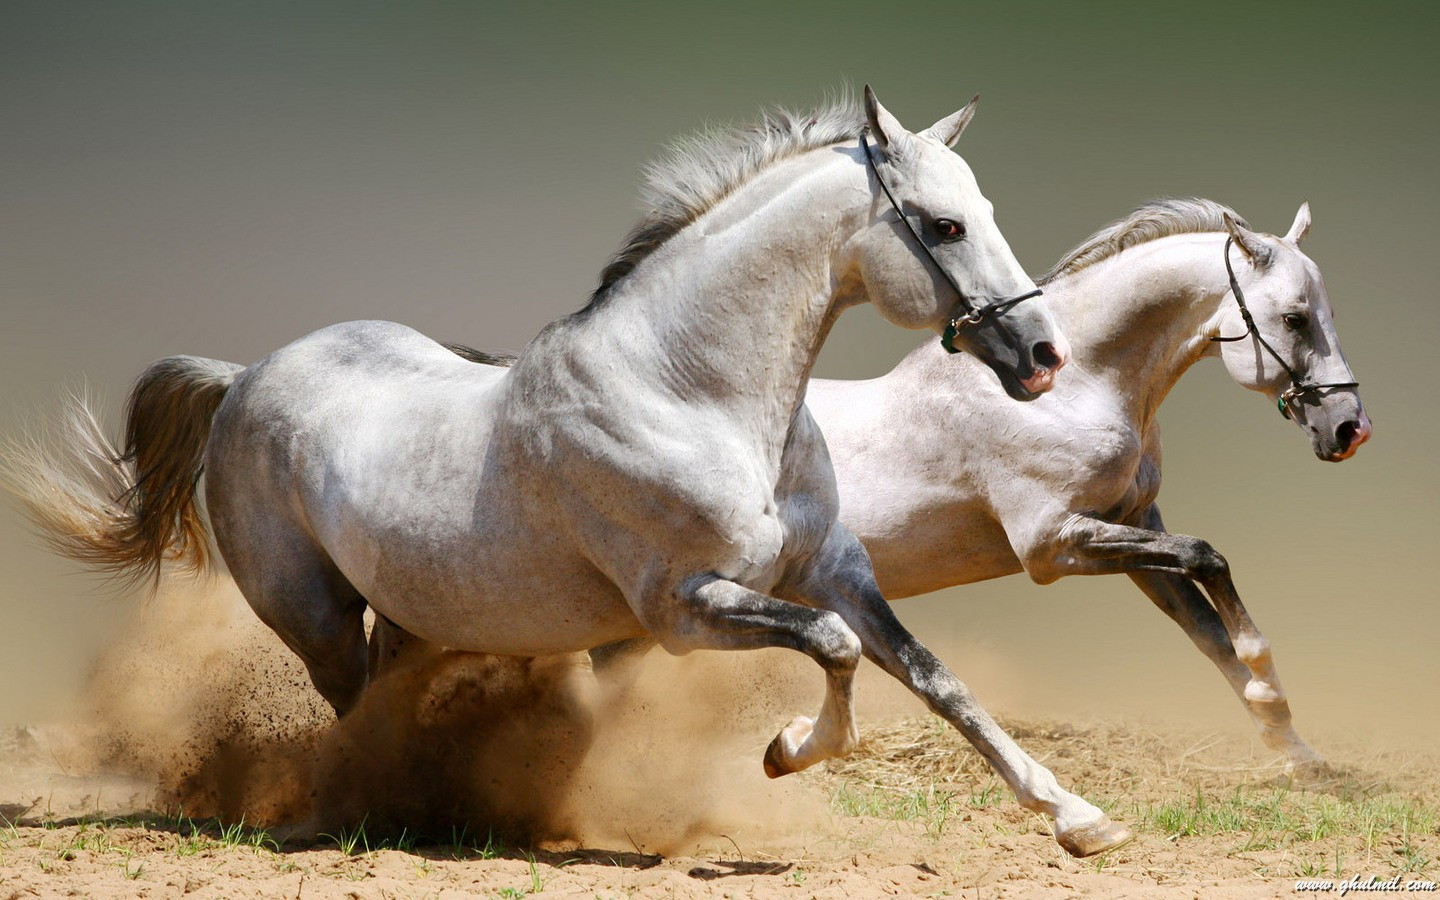 White running horses - photo#52